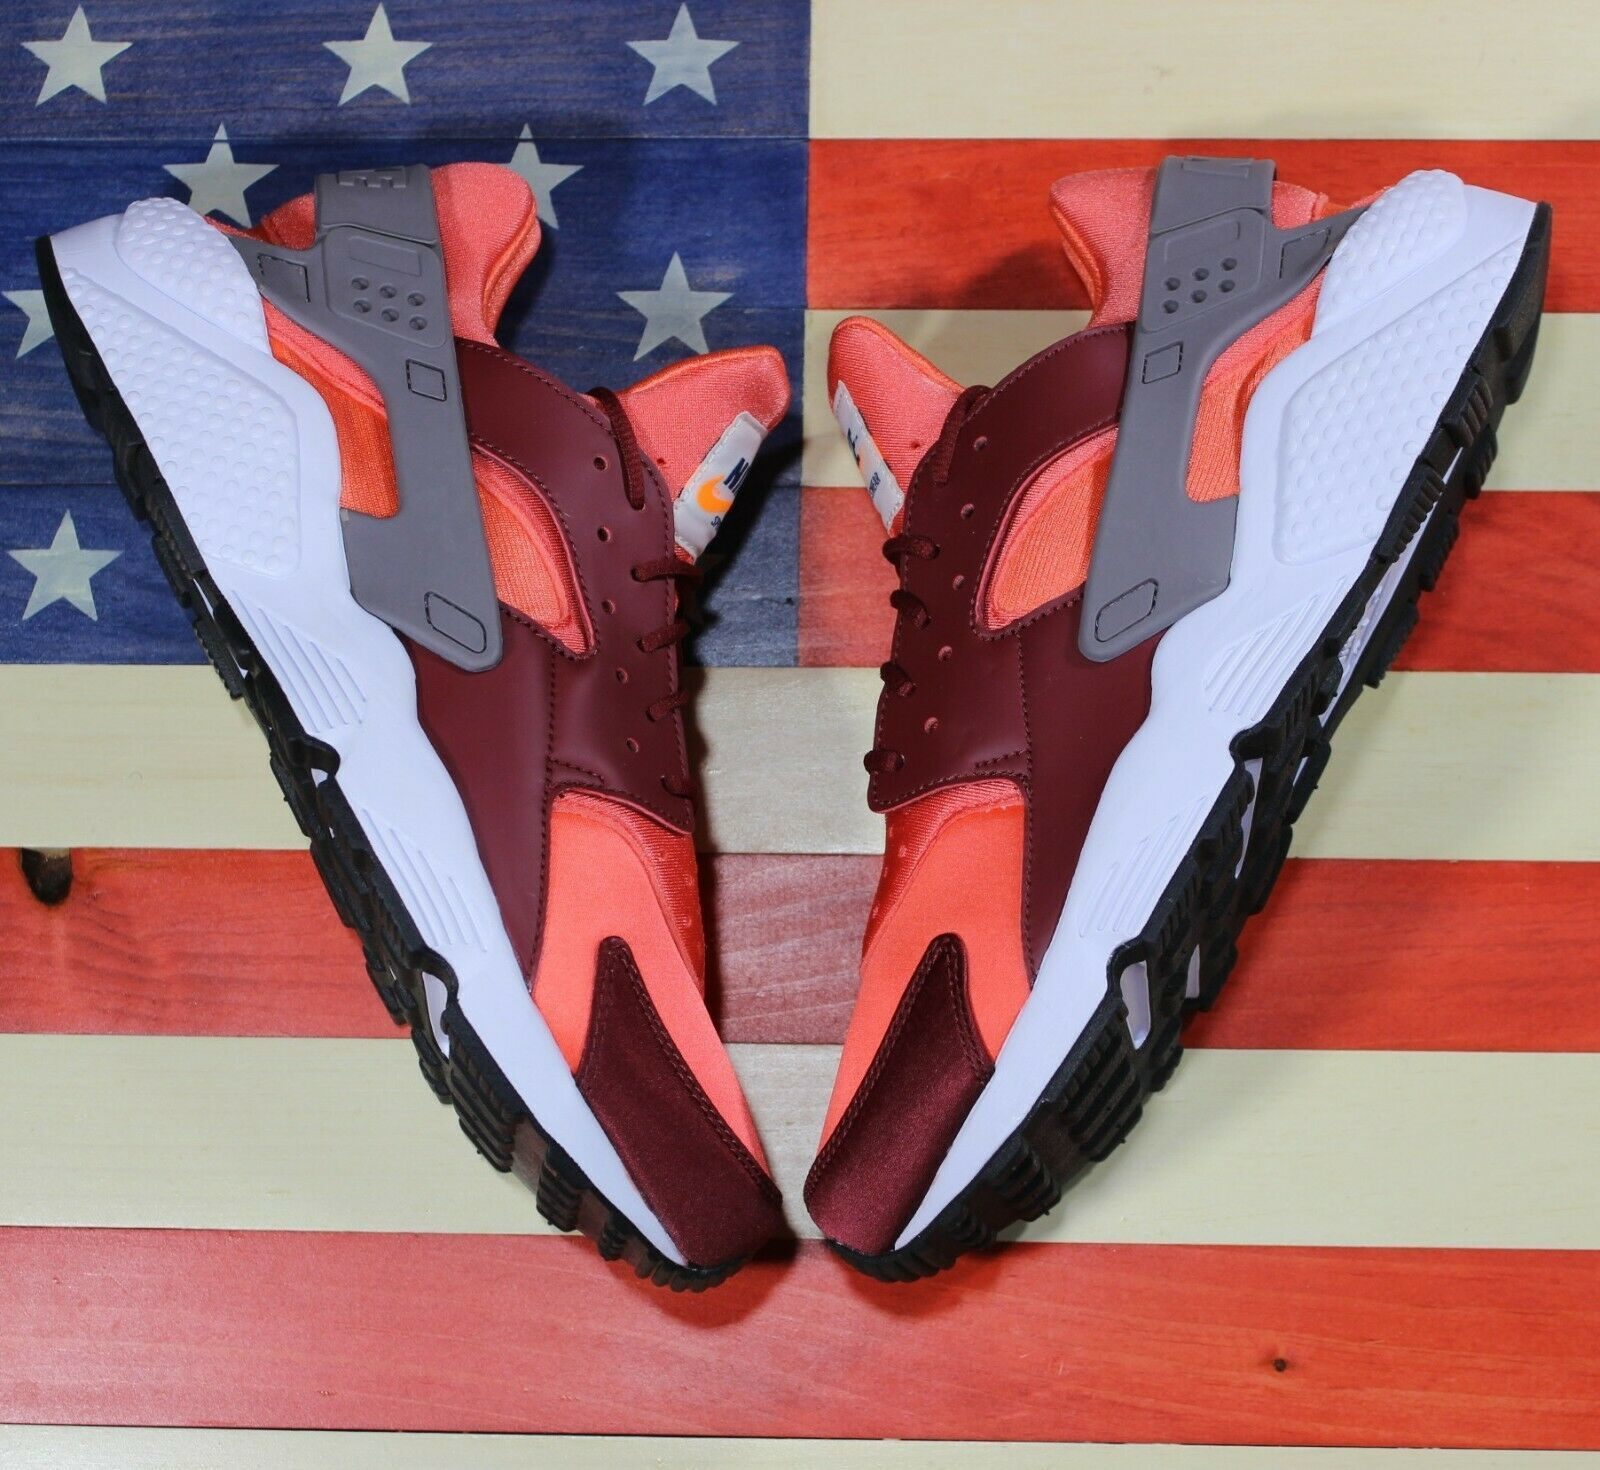 Nike Air Huarache Run Running Shoes Team Red Coral White [318429-054] Men's 11.5